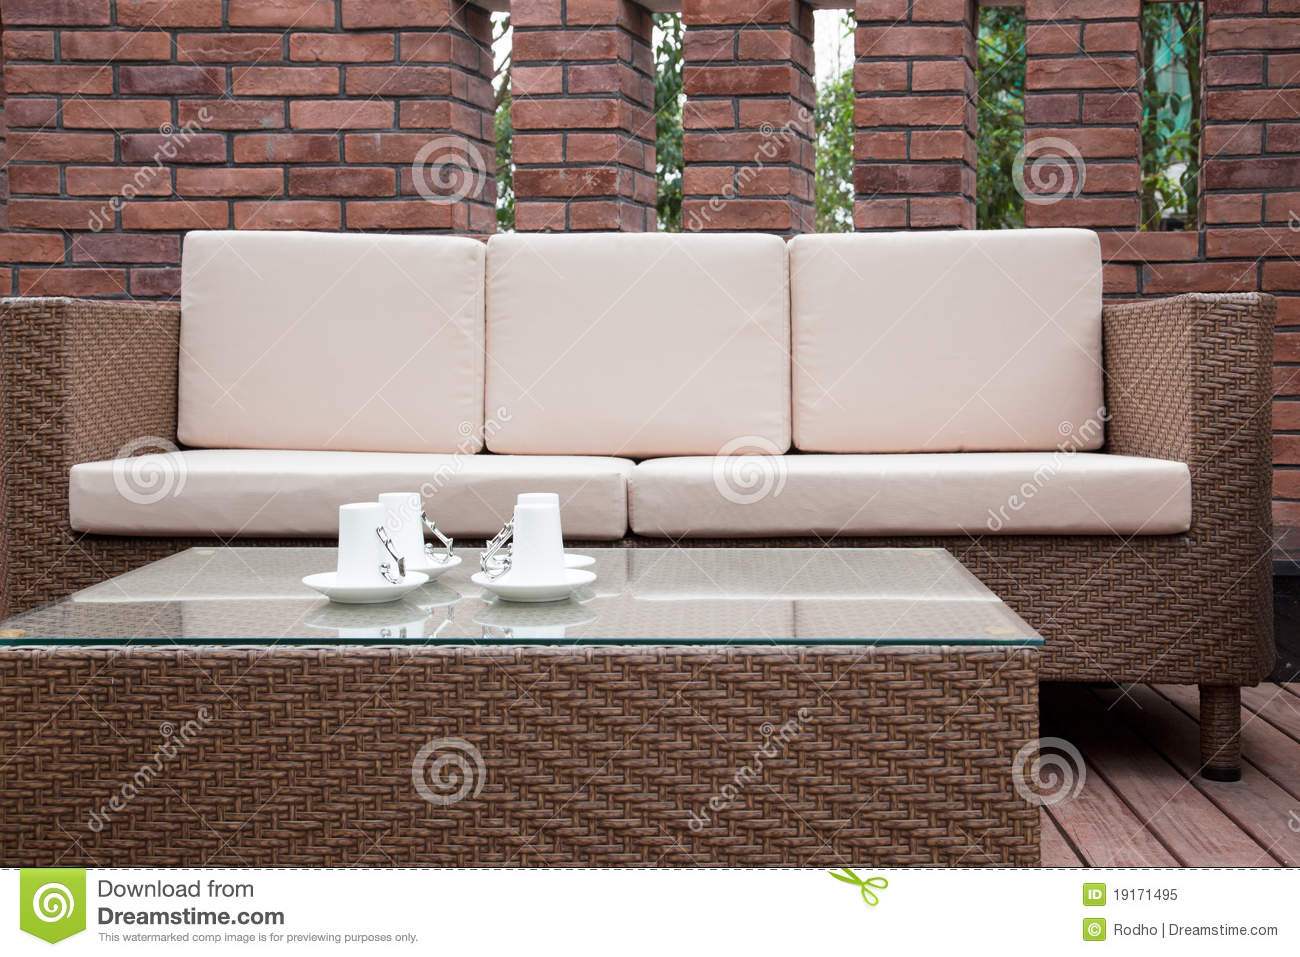 Outdoor Furniture Royalty Free Stock Image